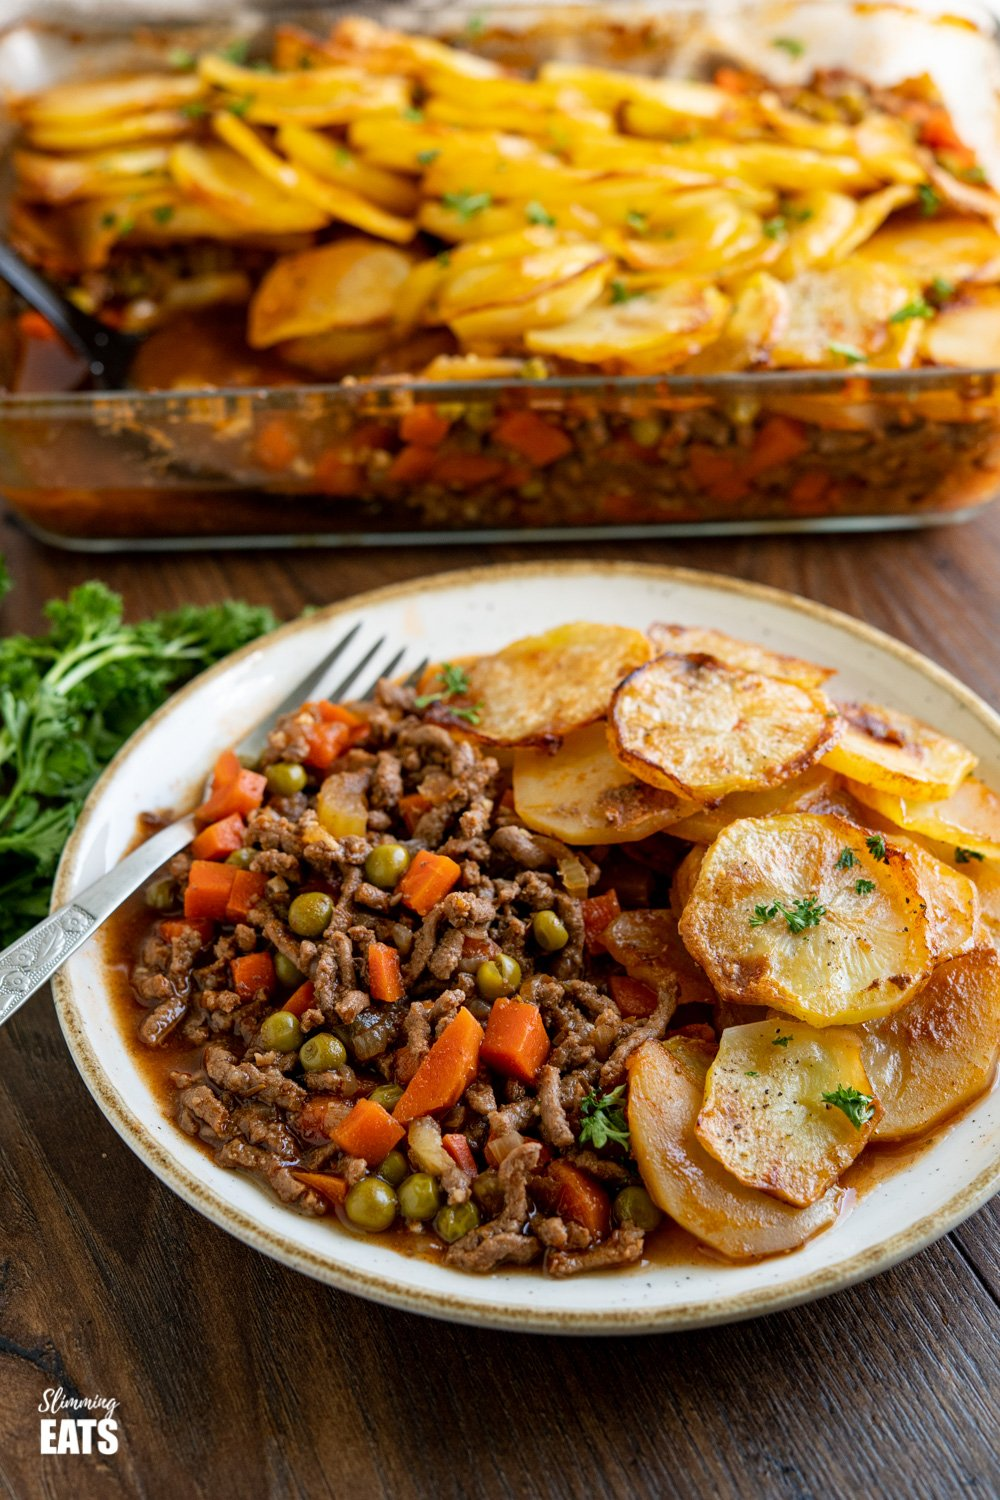 serving of crispy potato topped pie minced beef hotpot on plate with oven proof dish behind